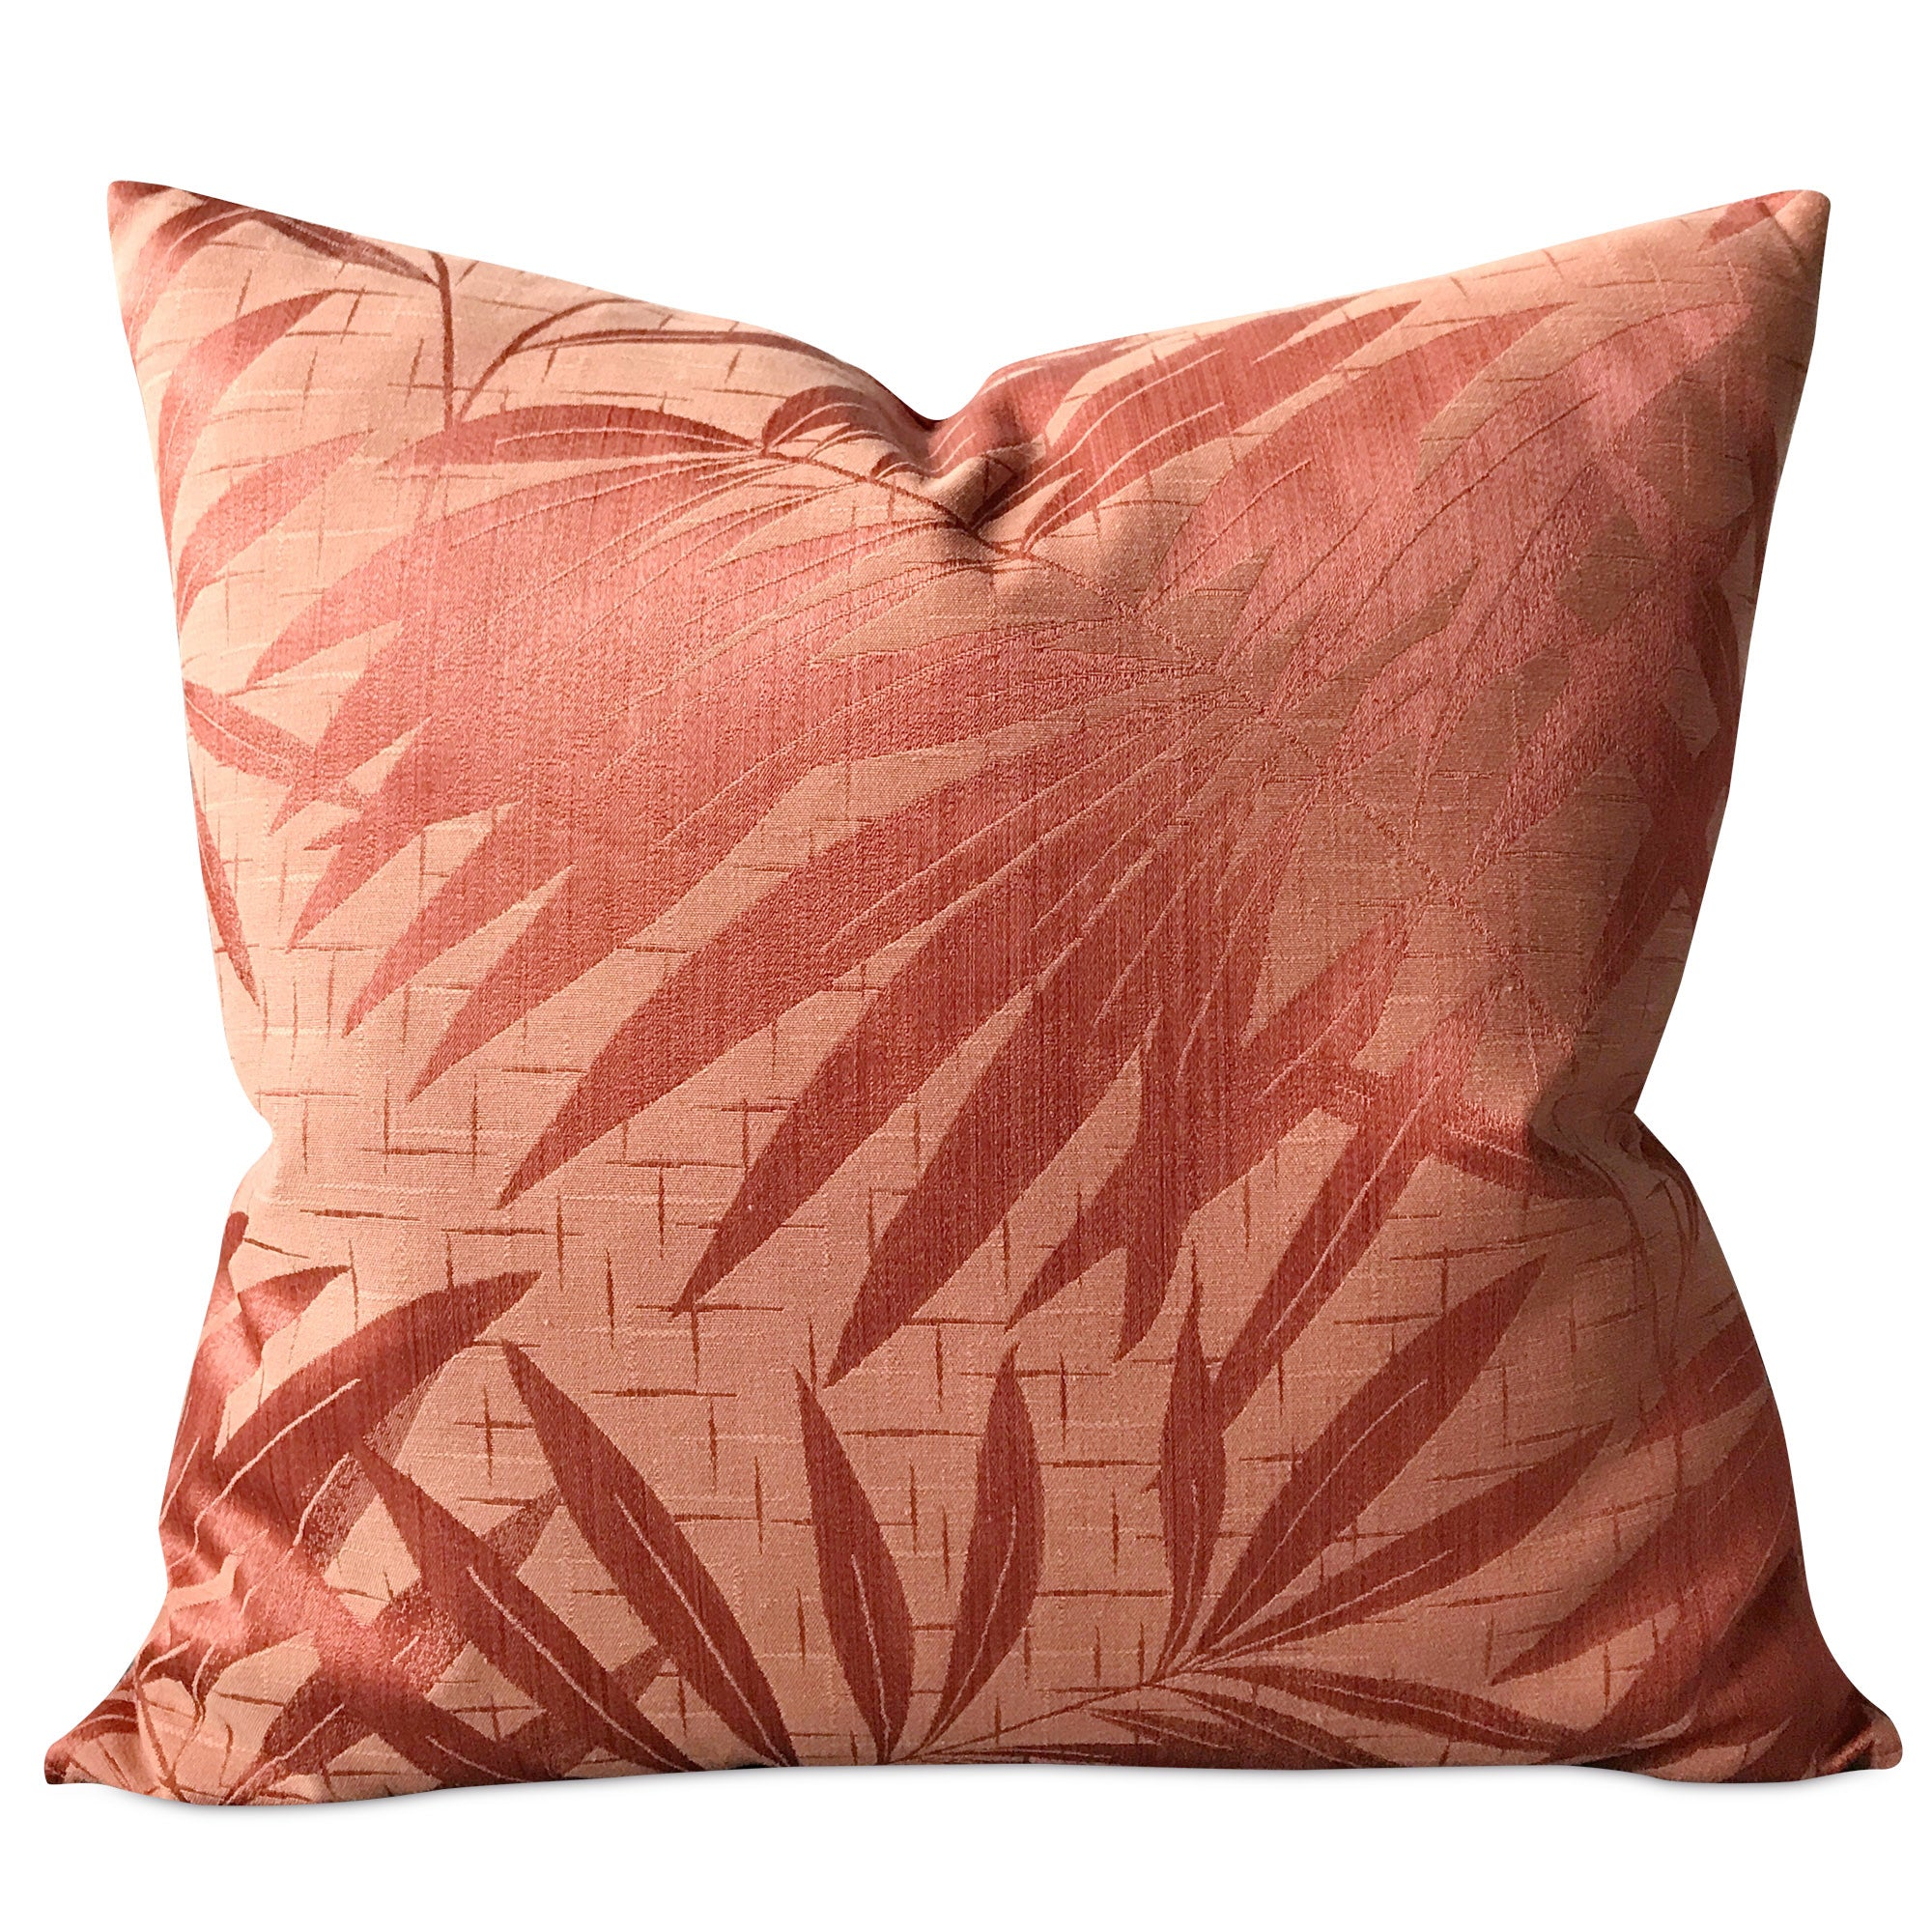 peach pillow blush pack store mulberry comfort product multiple decorative pillows single twin silk decor royal cases